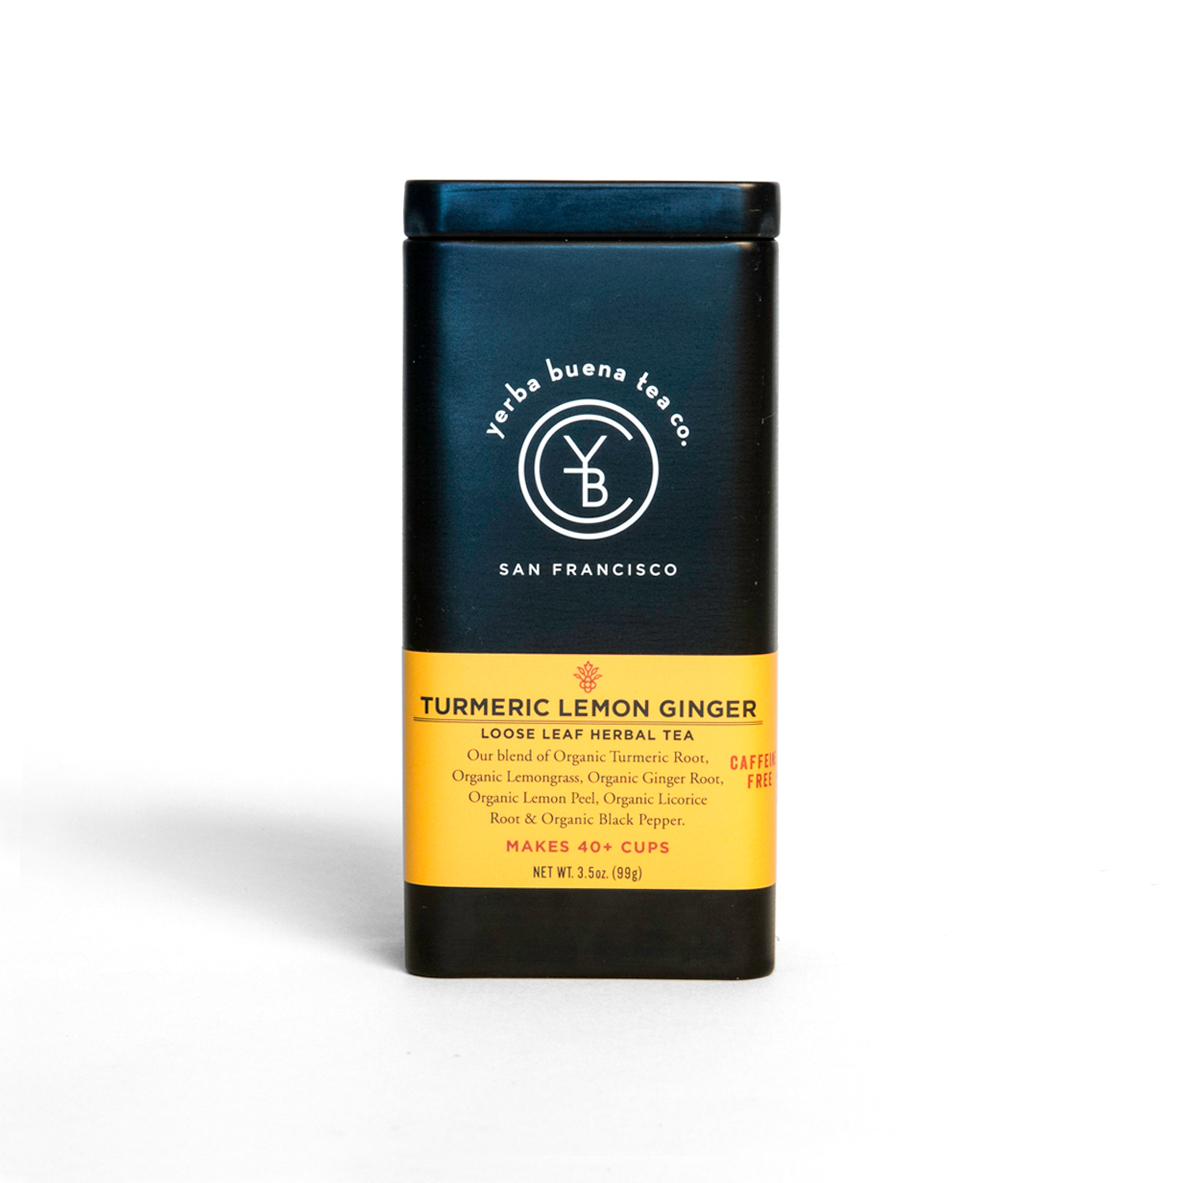 SHOP TURMERIC TEA